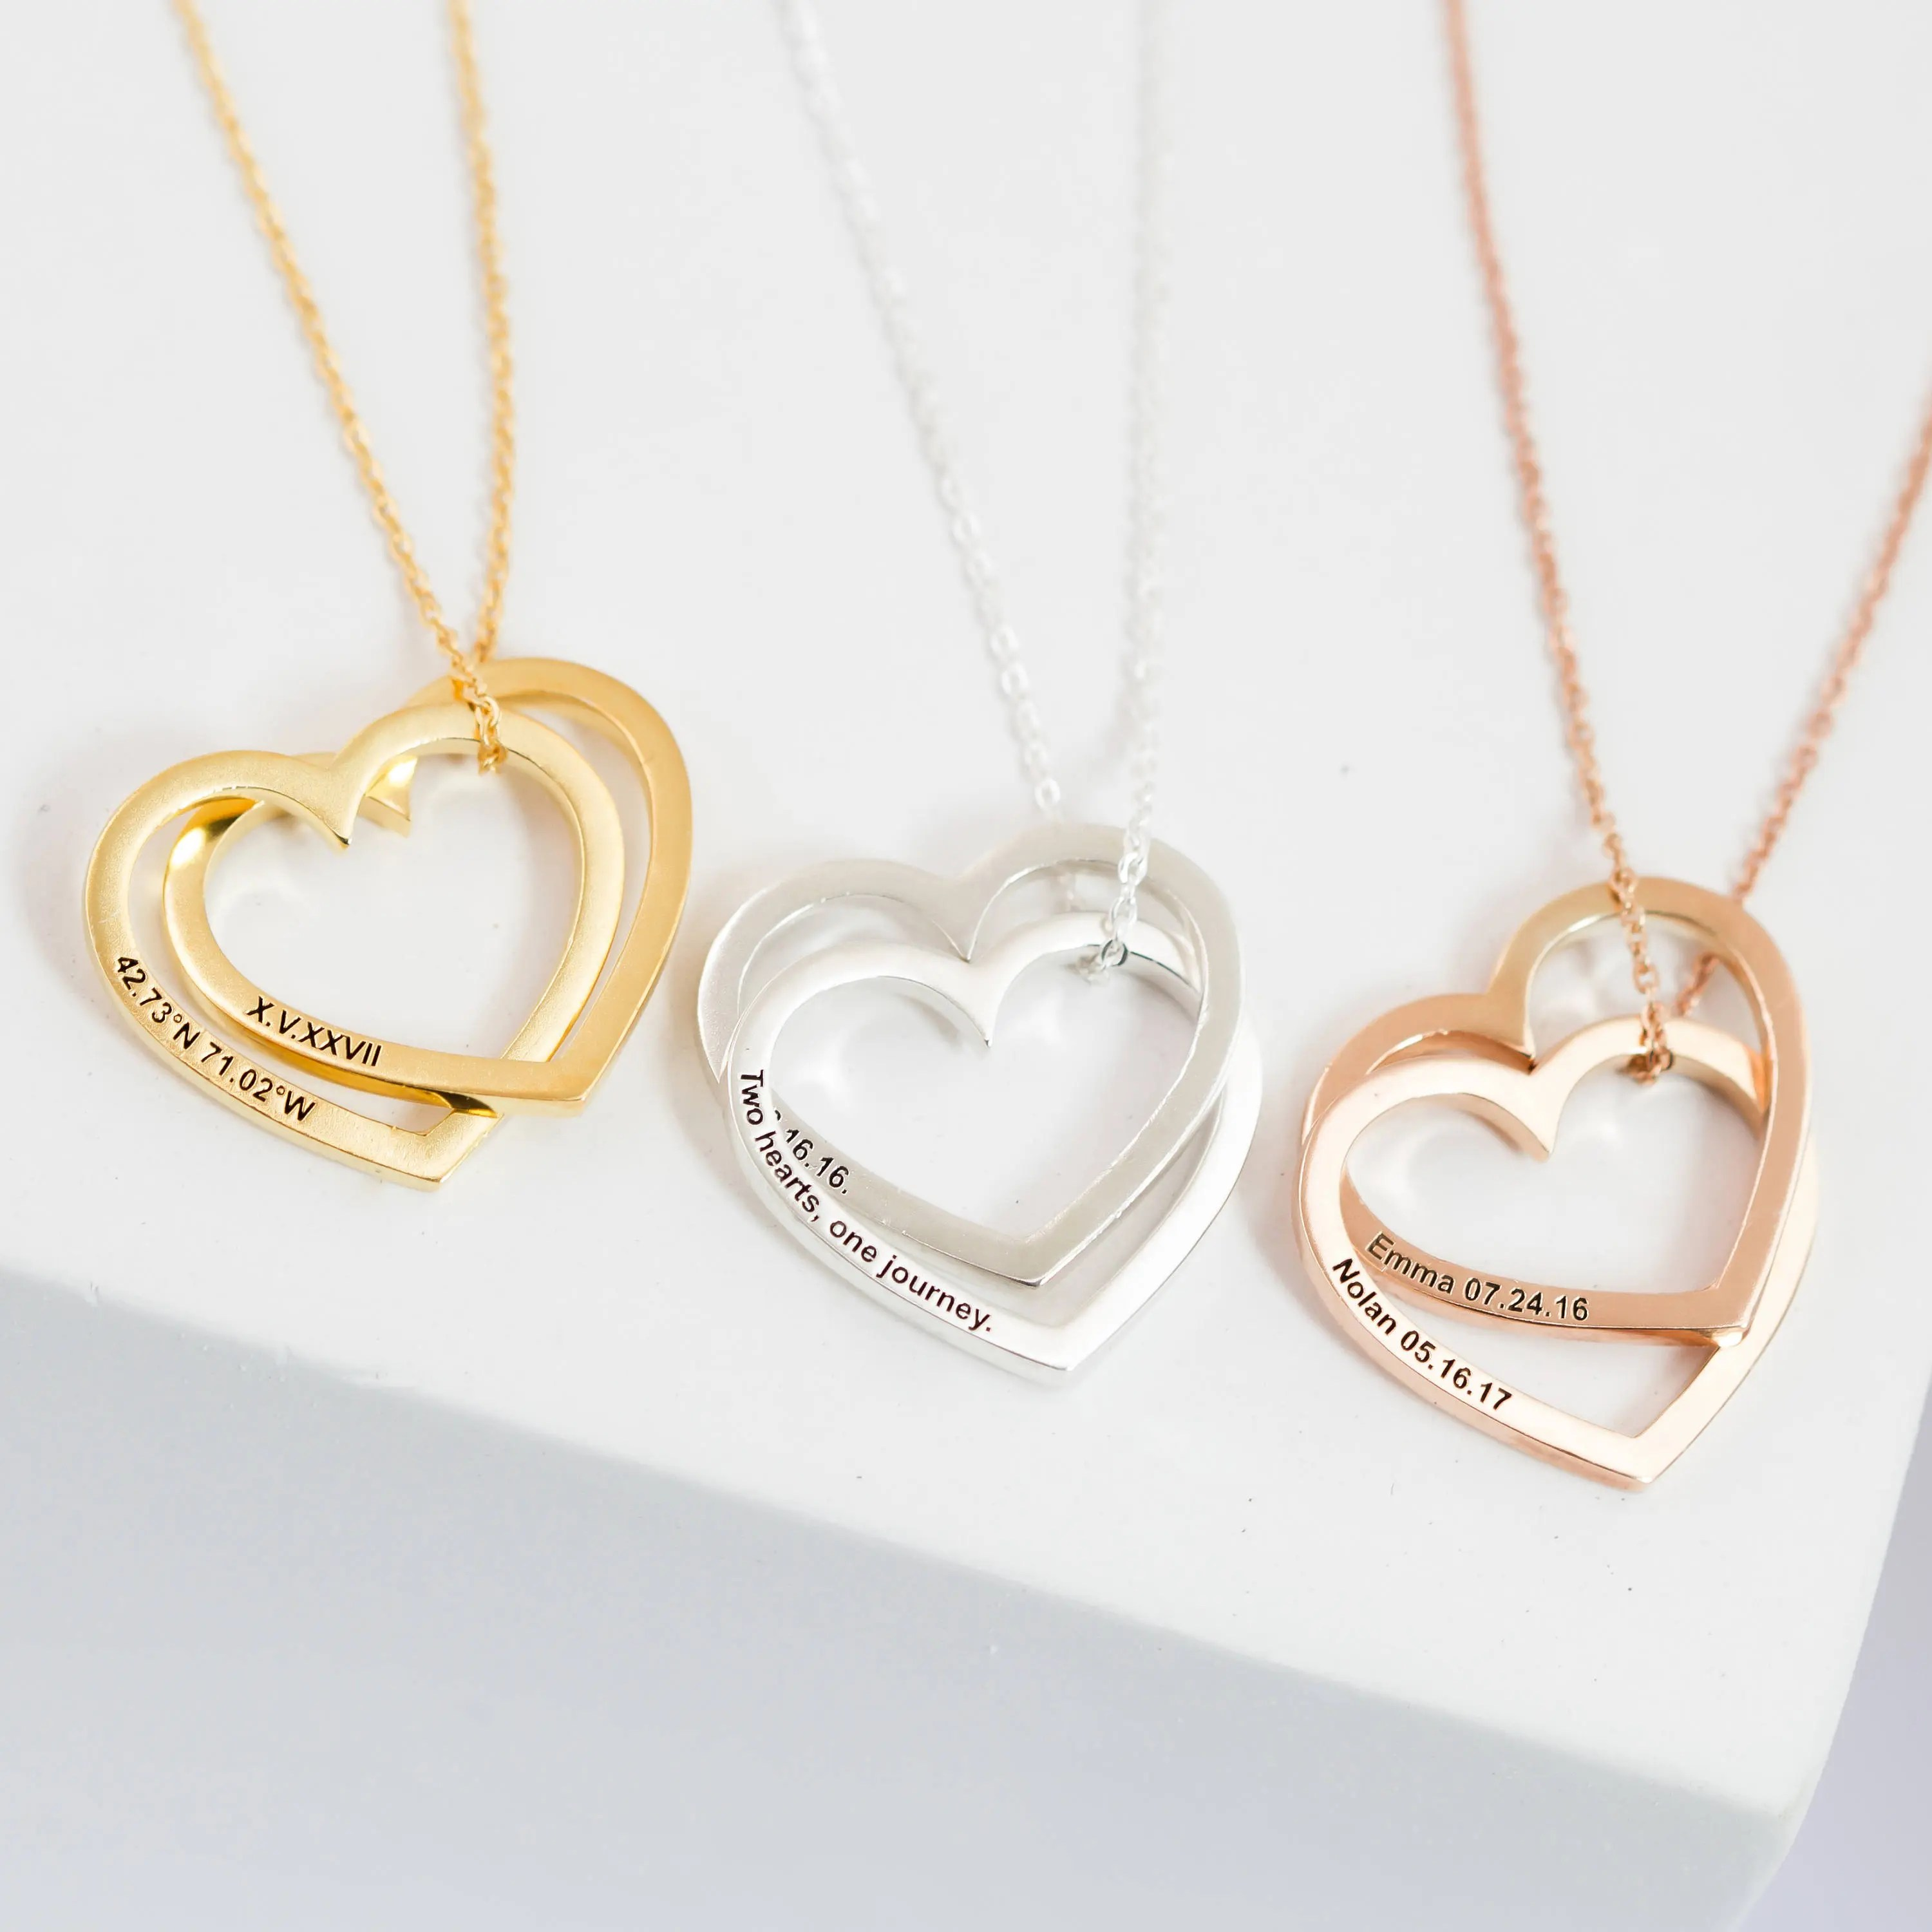 Custom Heart Necklace • Engrave Heart Pendant • Personalized Secret Message Charm • Inspiration Quote Jewelry • Sister Mother Gift • NM39F30                                                                IAIdIIIIII IIIbIIyIIII IICaitlynMinimalist         Ad from shop CaitlynMinimalist                               5 out of 5 stars                                                                                                                                                                                                                                                          (81,923)                 81,923 reviews                                                                                   Sale Price CA$38.31                                                                   CA$38.31                                                                             CA$51.08                                                              Original Price CA$51.08                                                                                               (25% off)